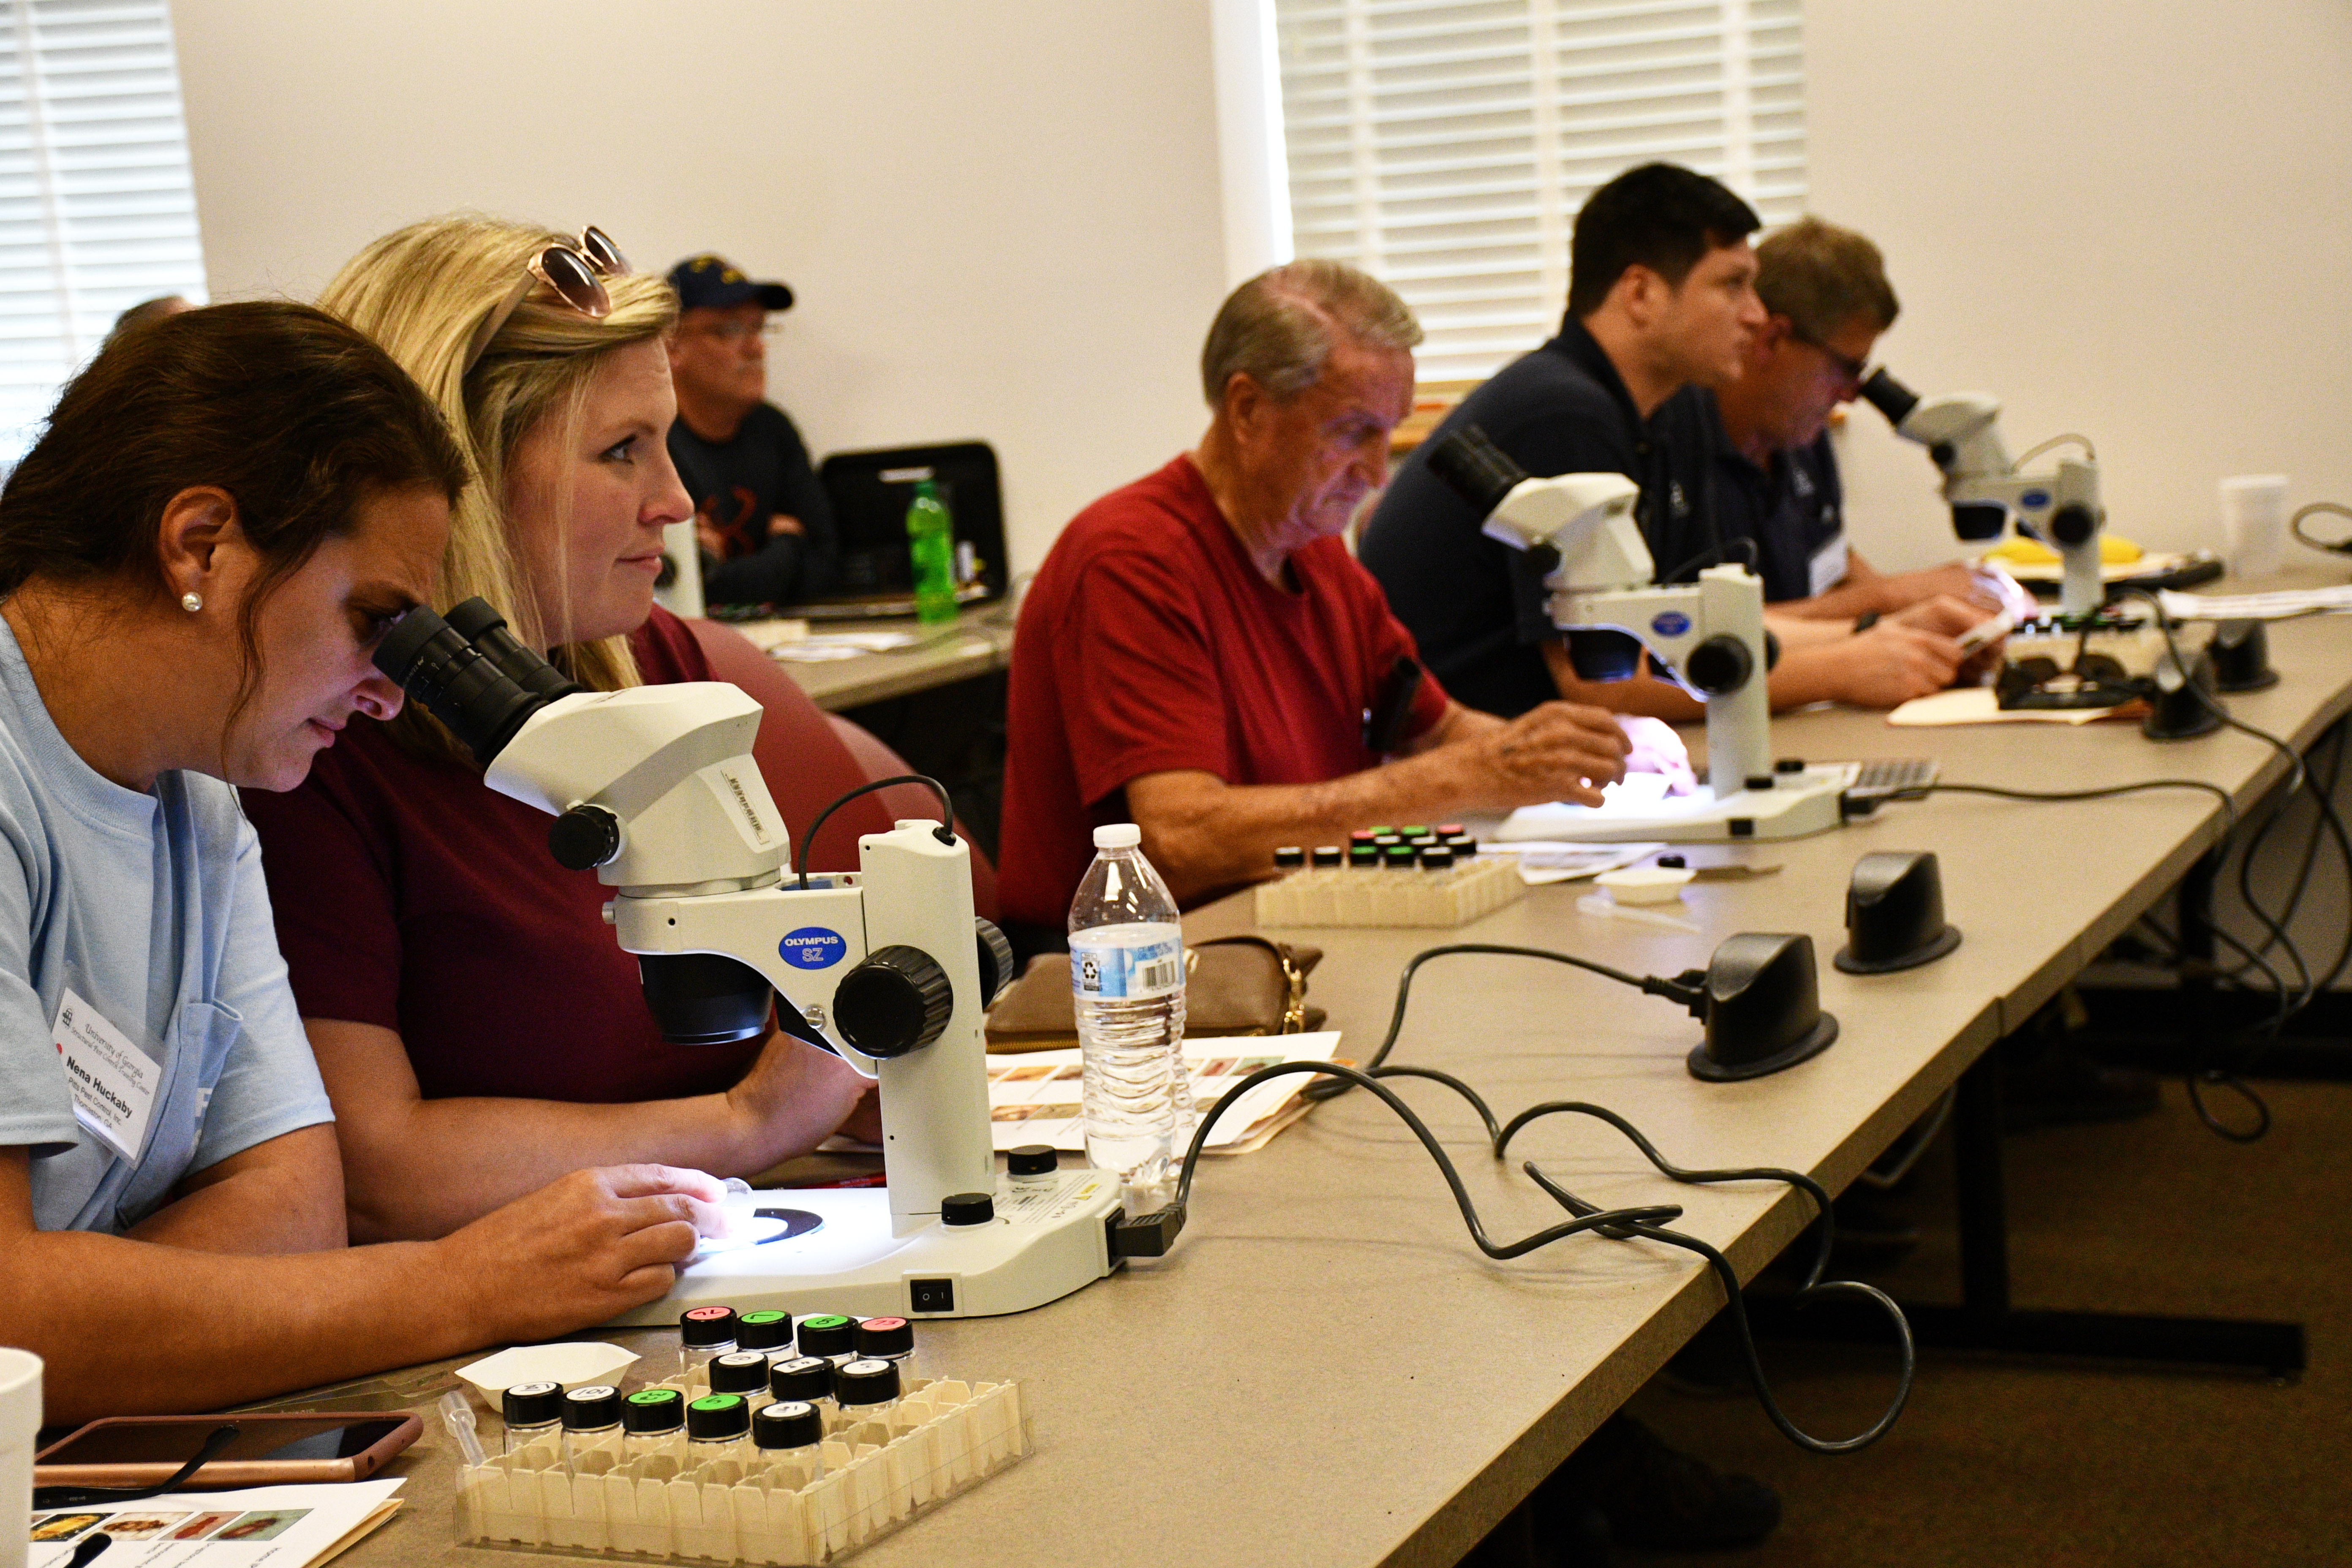 Pest control operators across the state and the Southeast attend a variety of workshops offered throughout the year by University of Georgia Cooperative Extension. A major component of these classes is insect identification.